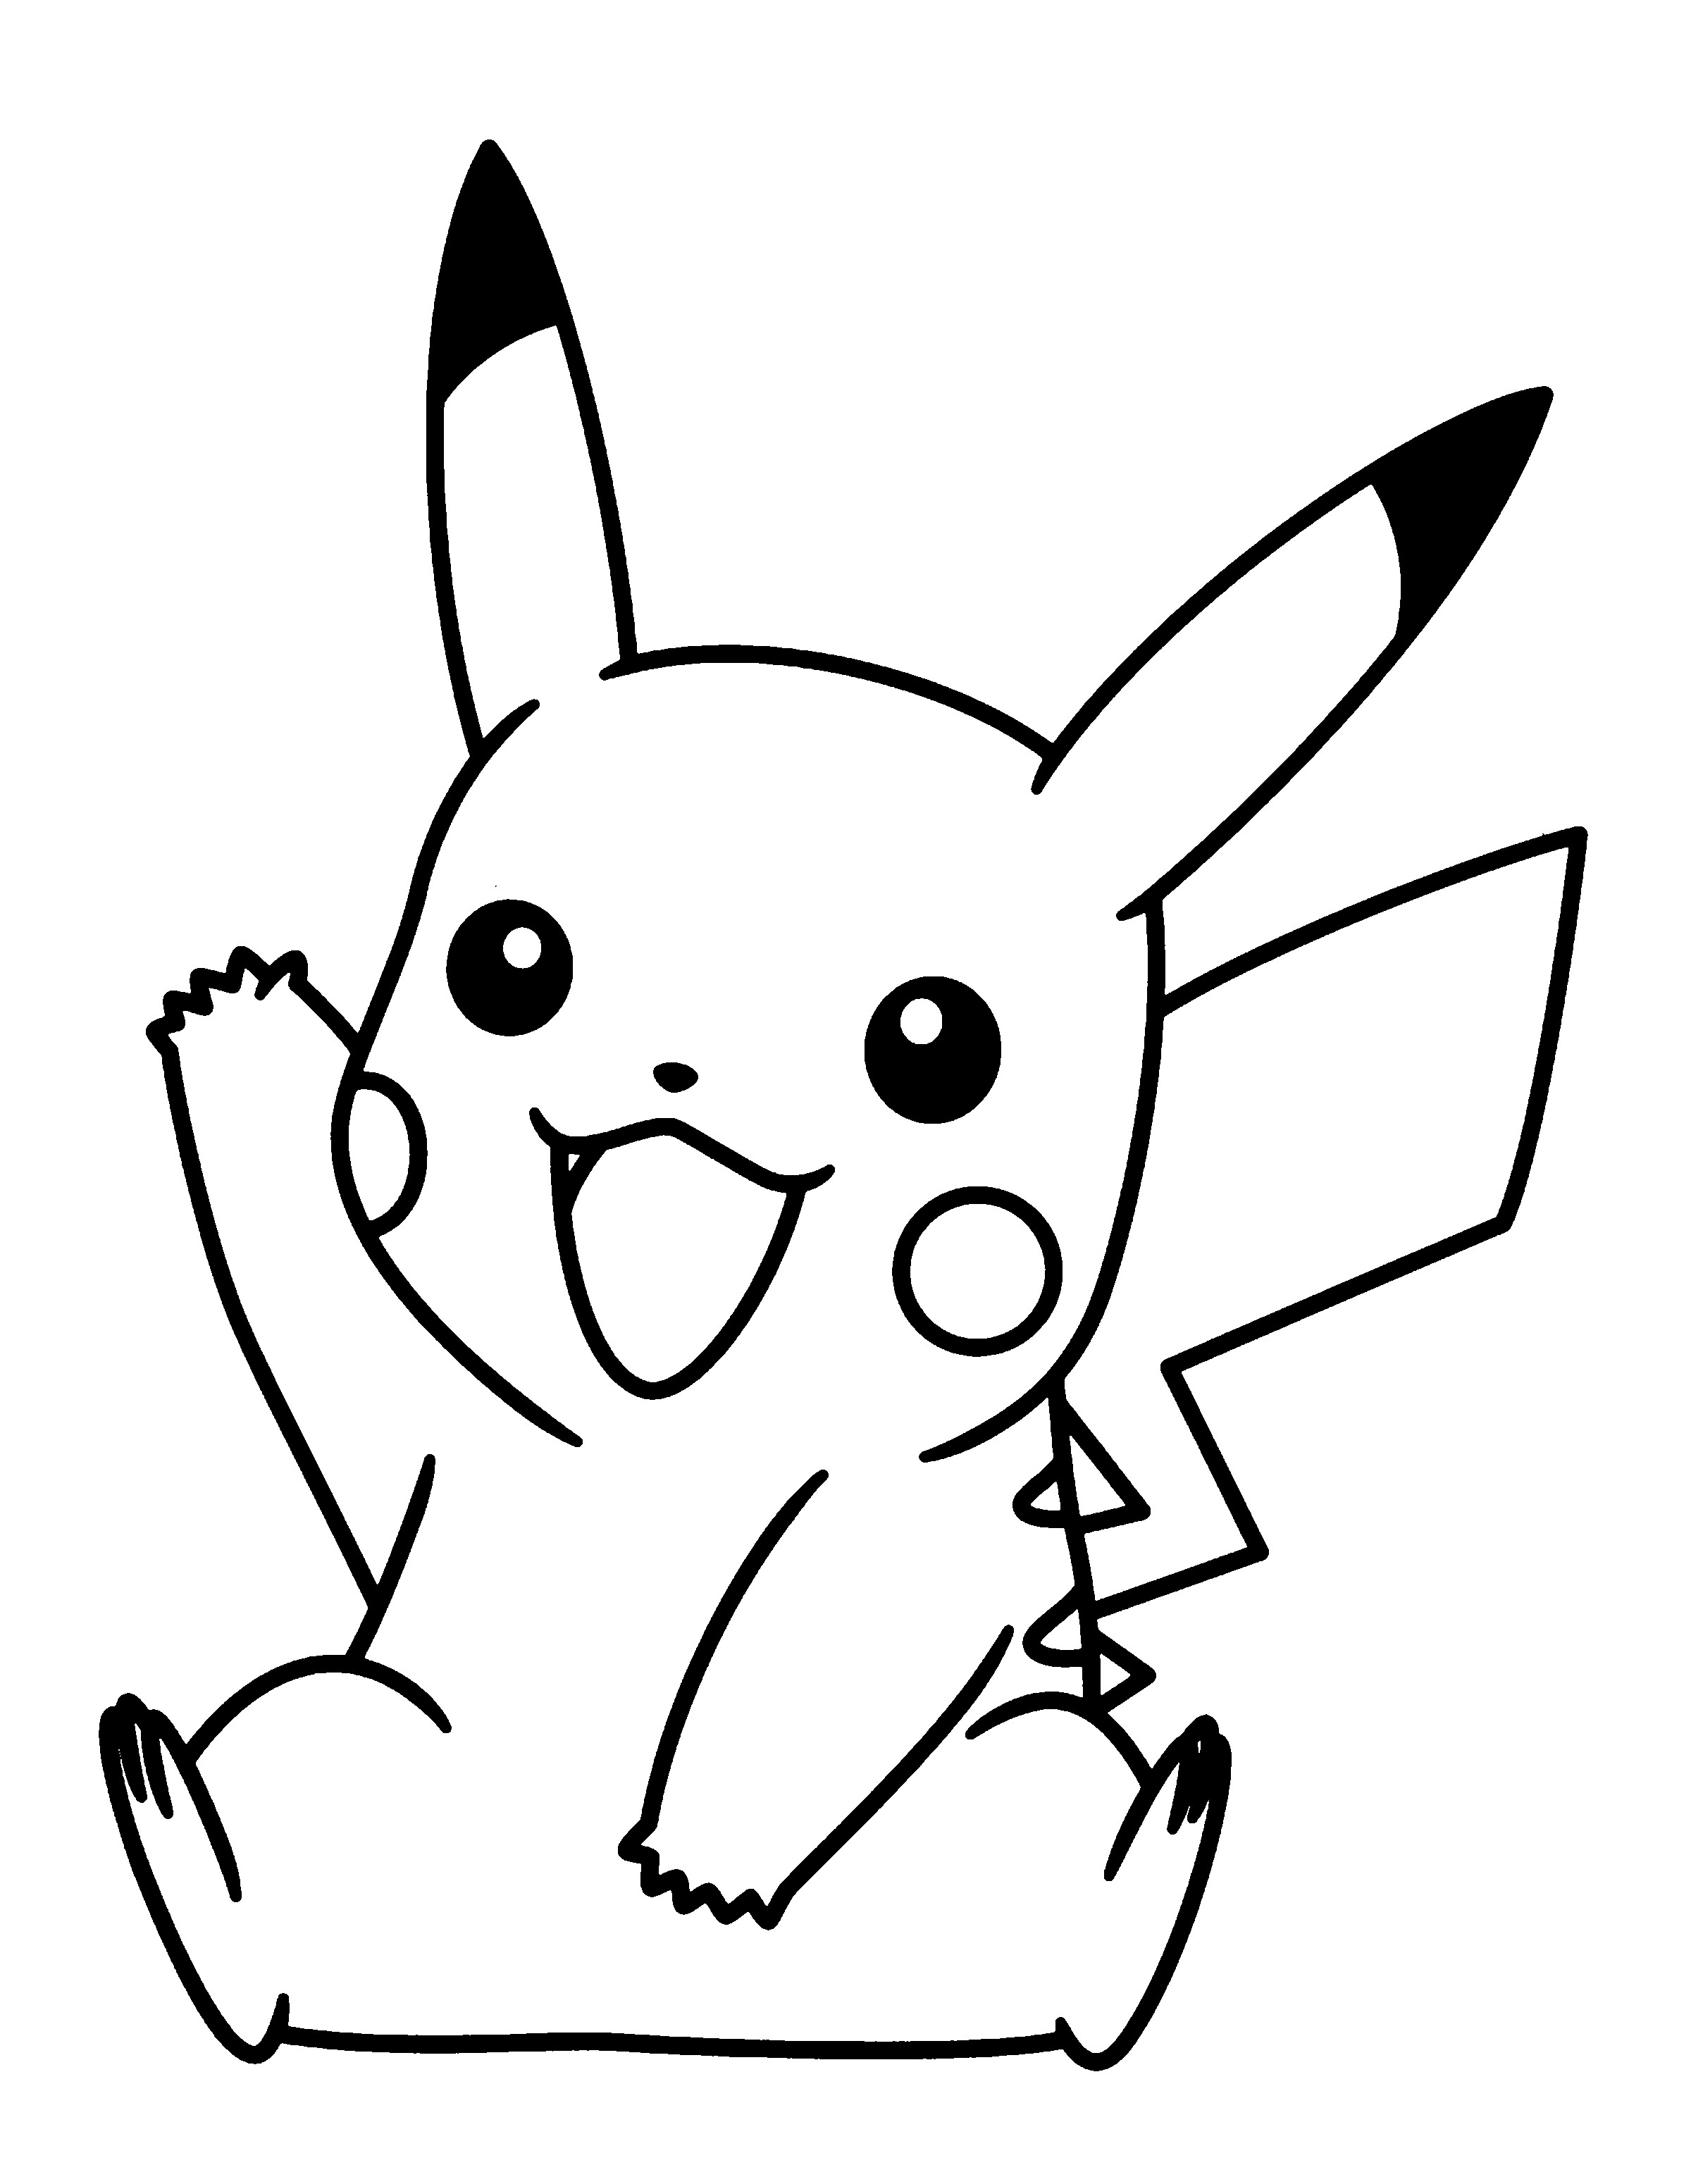 pikachu cute pokemon coloring pages july 2013 team colors cute pokemon pages coloring pikachu